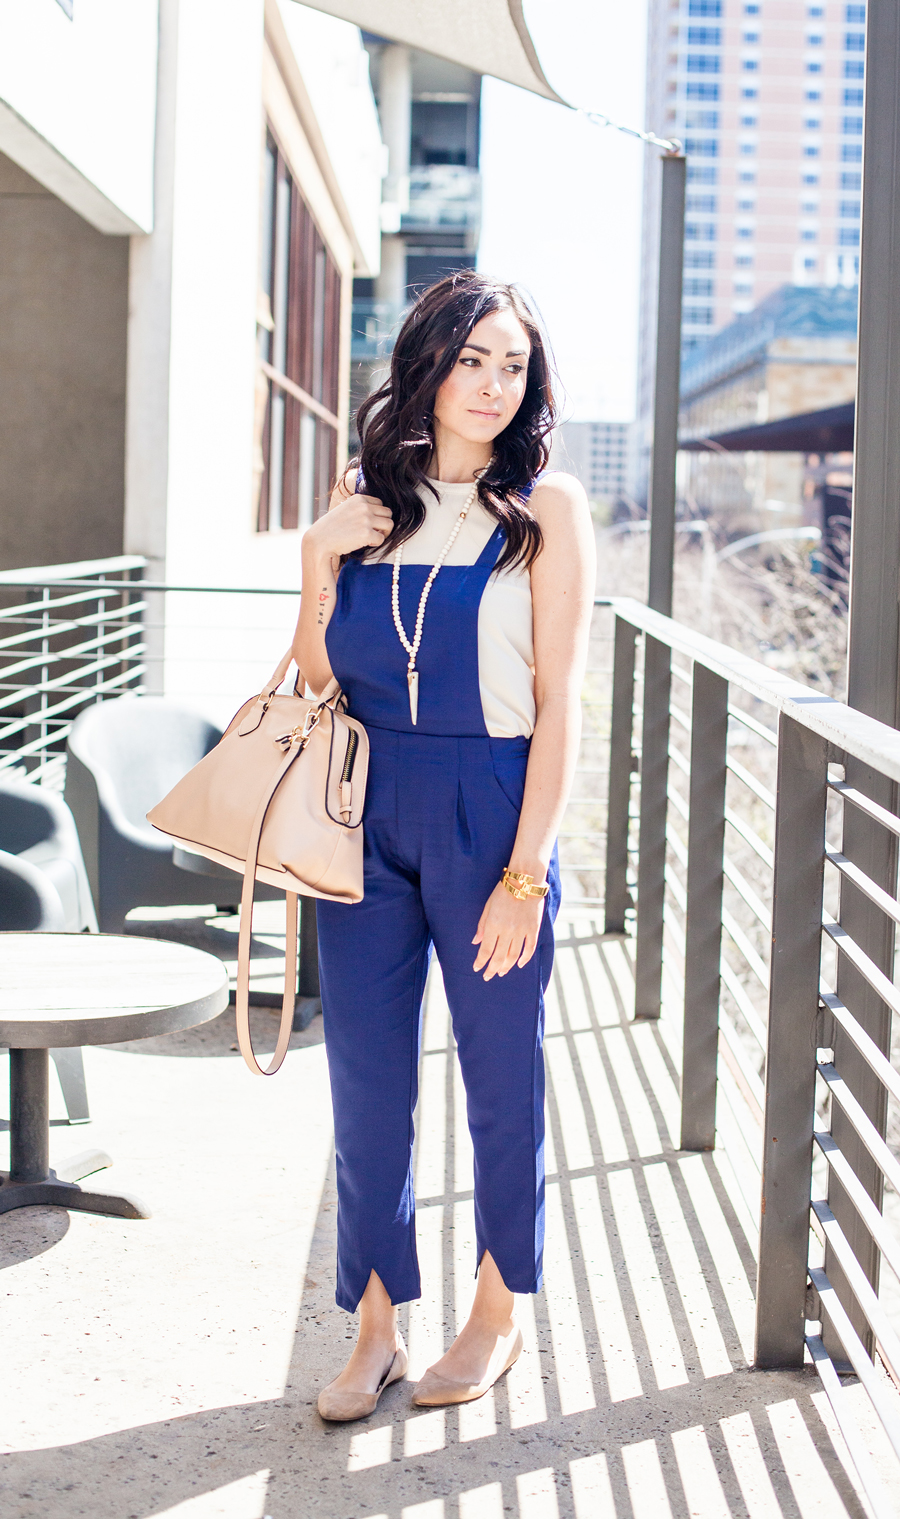 FTT-WISEWEAR-BRACELET-OVERALLS-LYDA-PHOTOGRAPHY-AUSTIN-BLOGGER-4